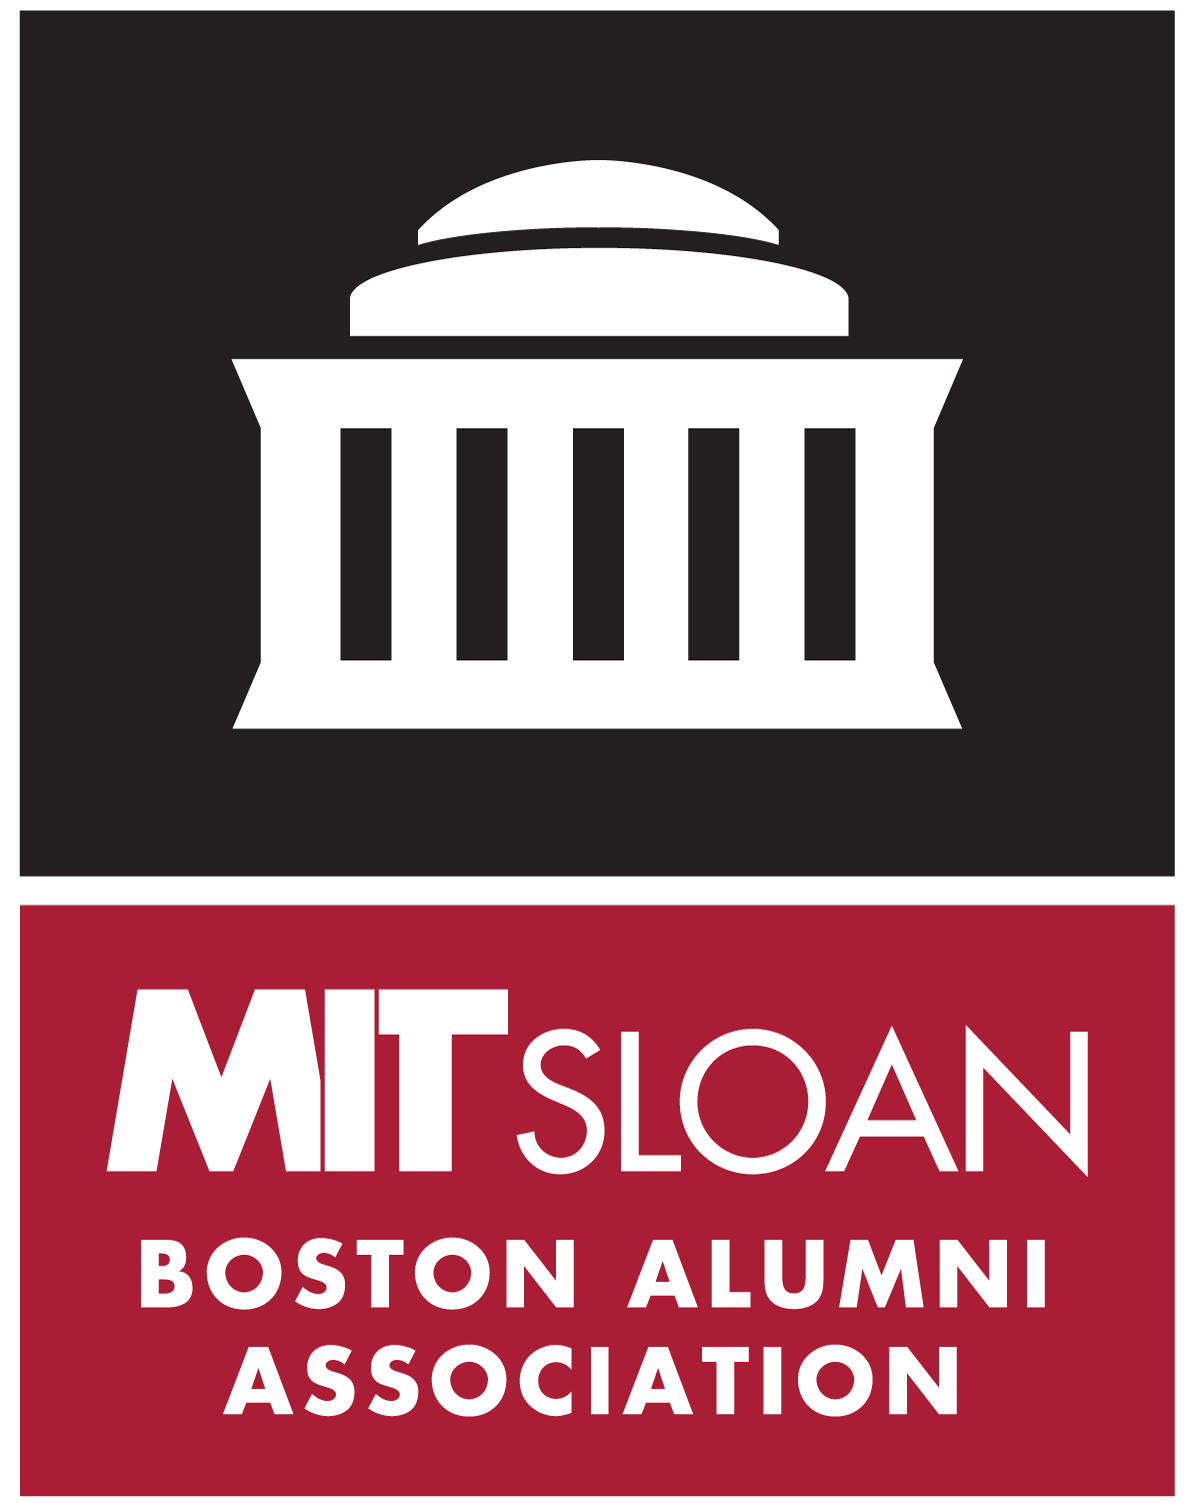 MIT Sloan Boston Alumni Association